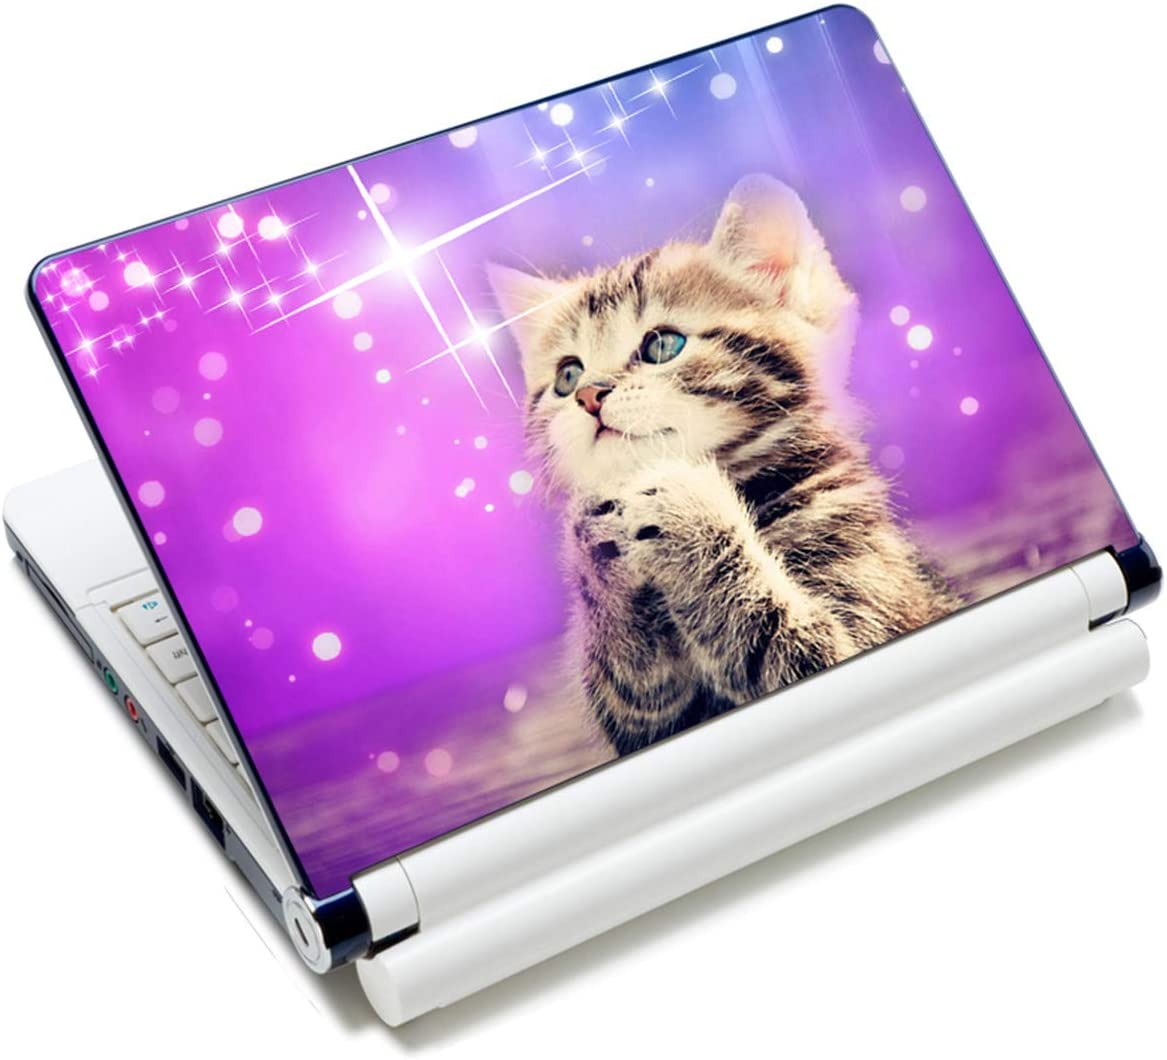 "Laptop Skin Sticker Decal,12"" 13"" 13.3"" 14"" 15"" 15.4"" 15.6"" Laptop Skin Sticker Protector Cover for Toshiba Hp Samsung Dell Apple Acer Leonovo Sony Asus Laptop Notebook (Purple Wish Cat)"